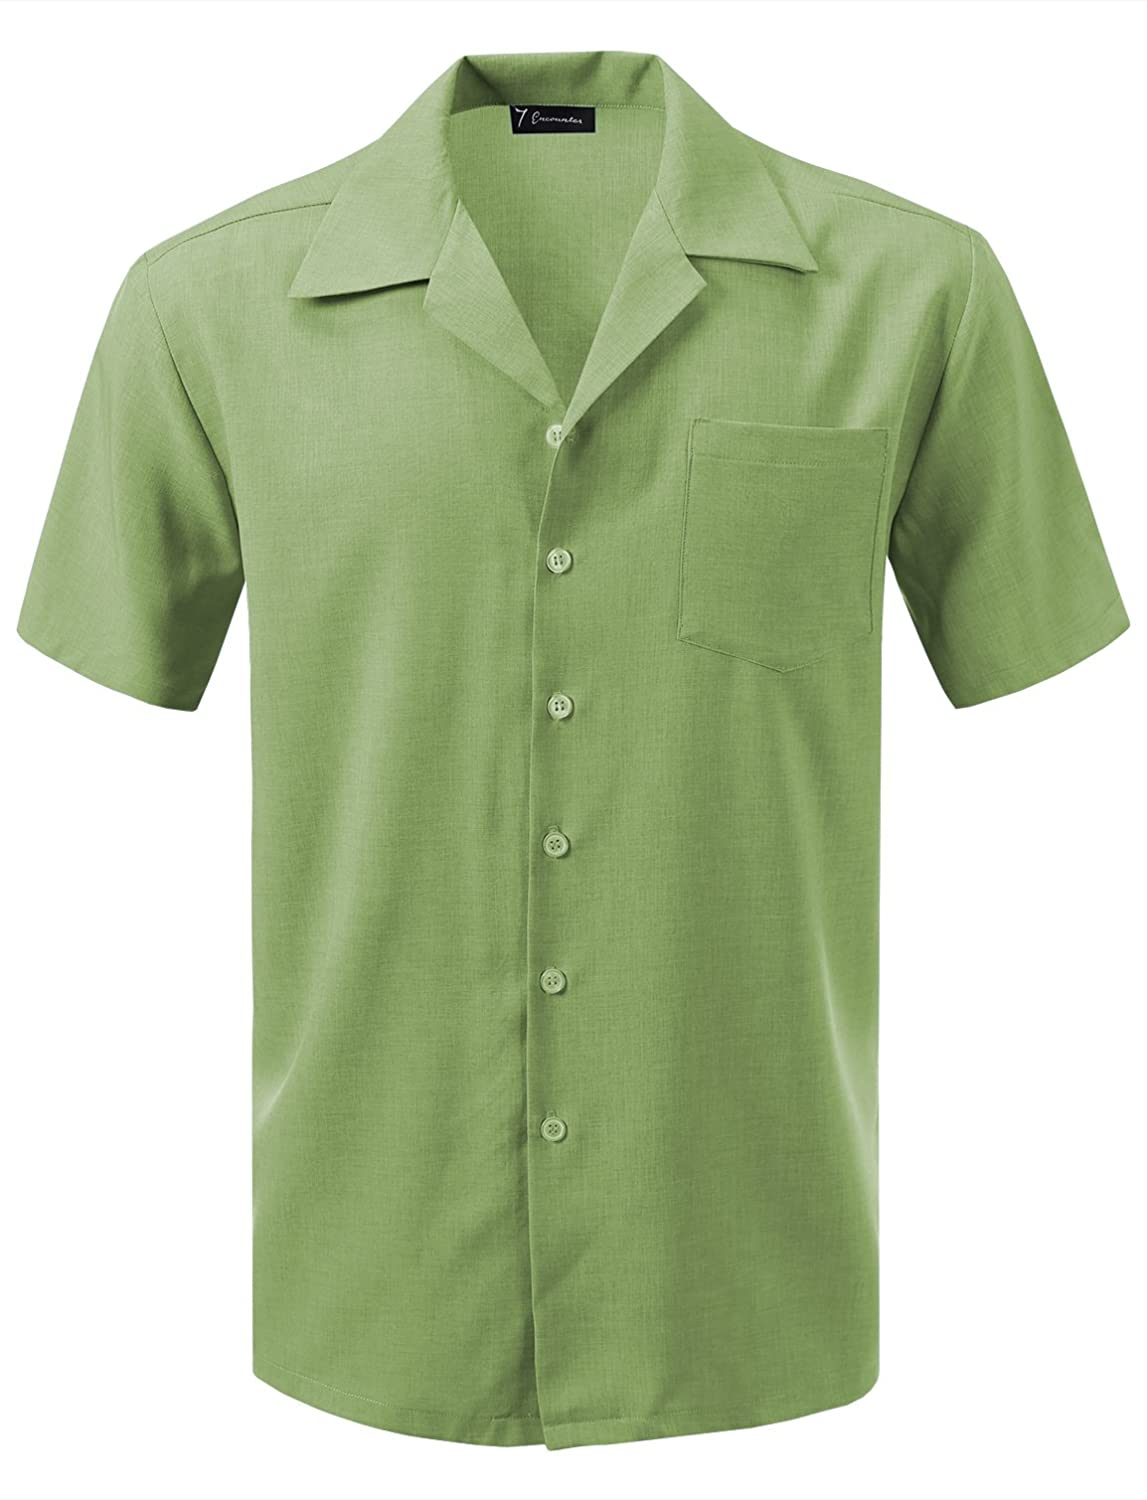 Men's Swing Dance Clothing to Keep You Cool 7 Encounter Mens Camp Dress Shirt $29.99 AT vintagedancer.com